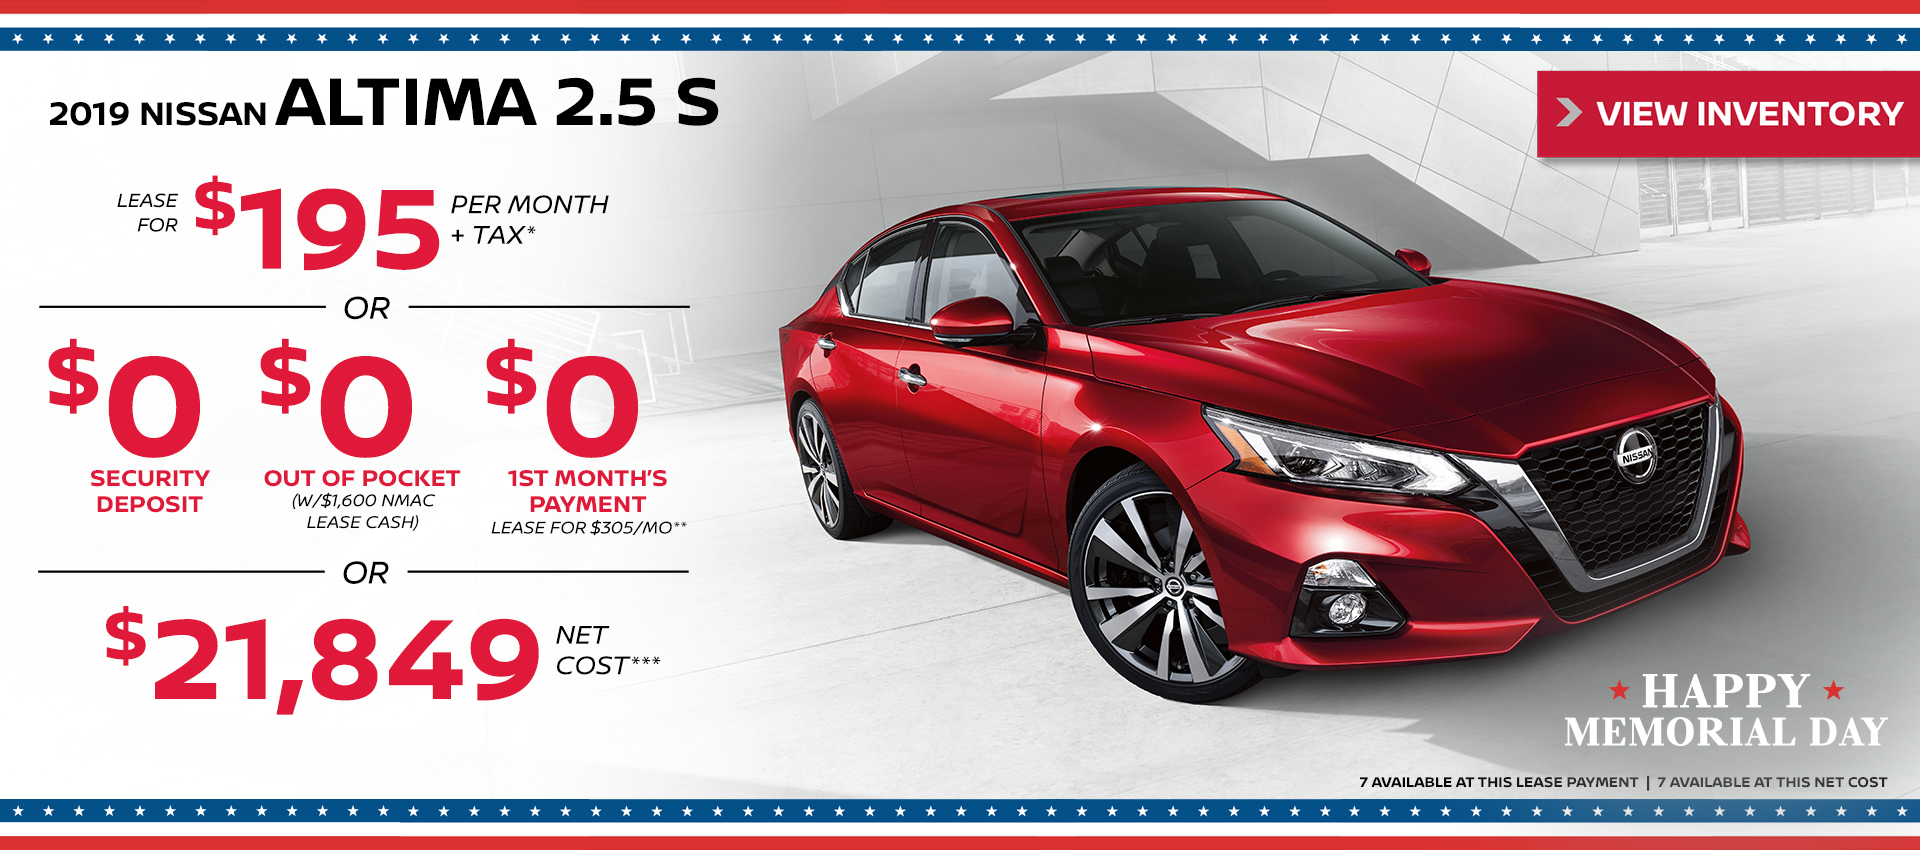 Mossy Nissan - Nissan Altima $195 Lease HP